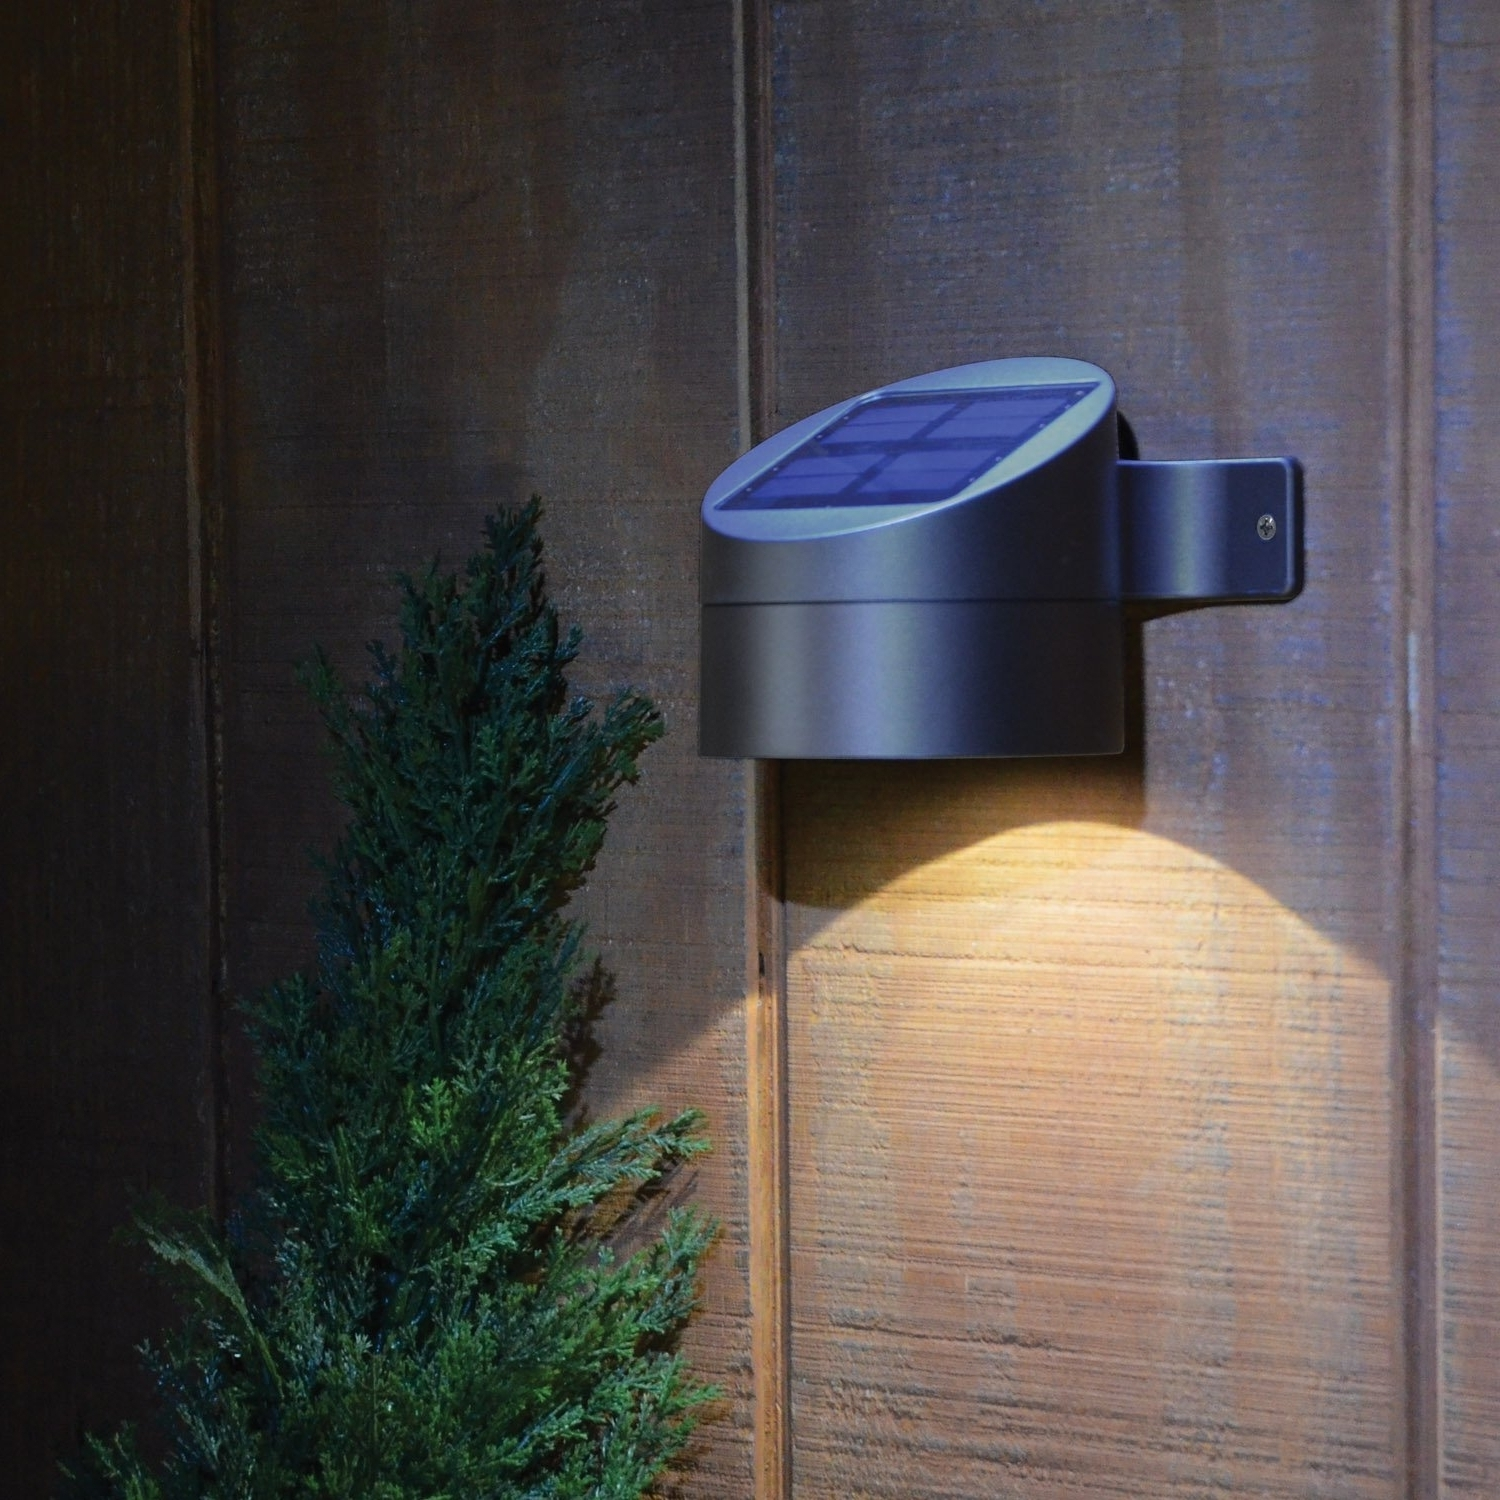 Well Known Battery Operated Wall Mounted Outdoor Lights • Outdoor Lighting Within Battery Operated Outdoor Wall Lights (View 2 of 20)